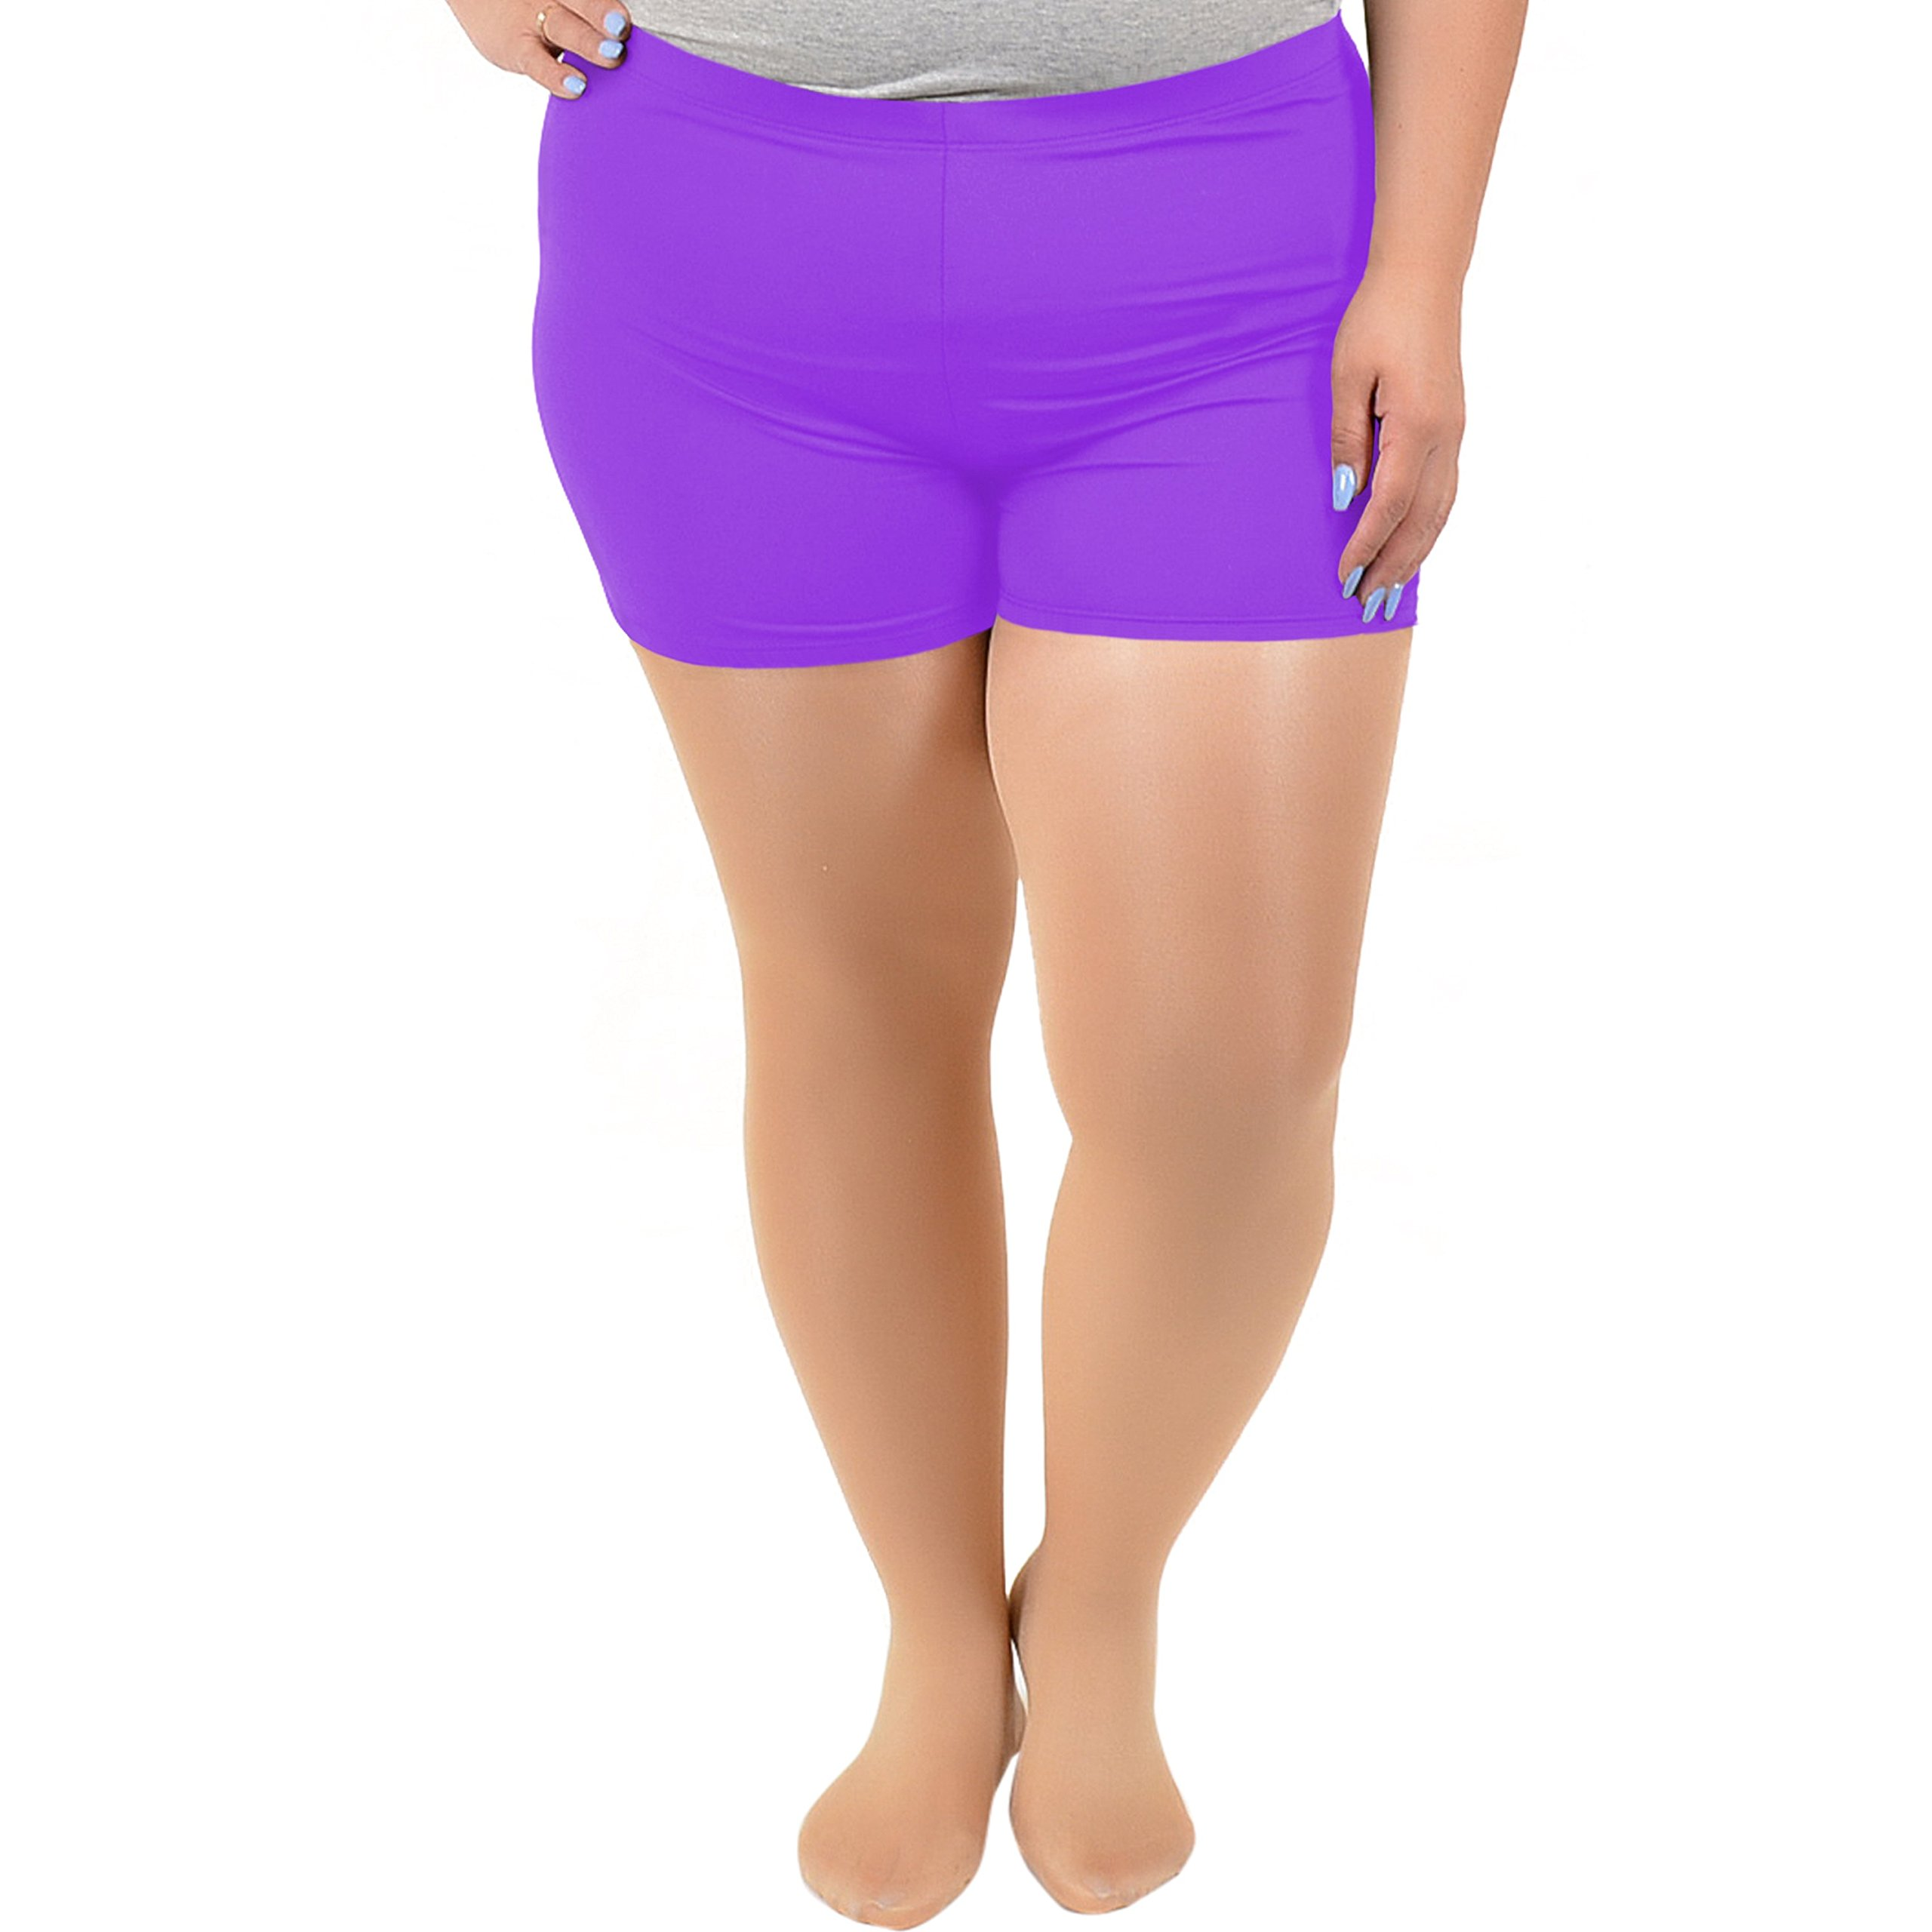 Stretch is Comfort Women's NYLON SPANDEX Stretch Booty Shorts Purple 3X